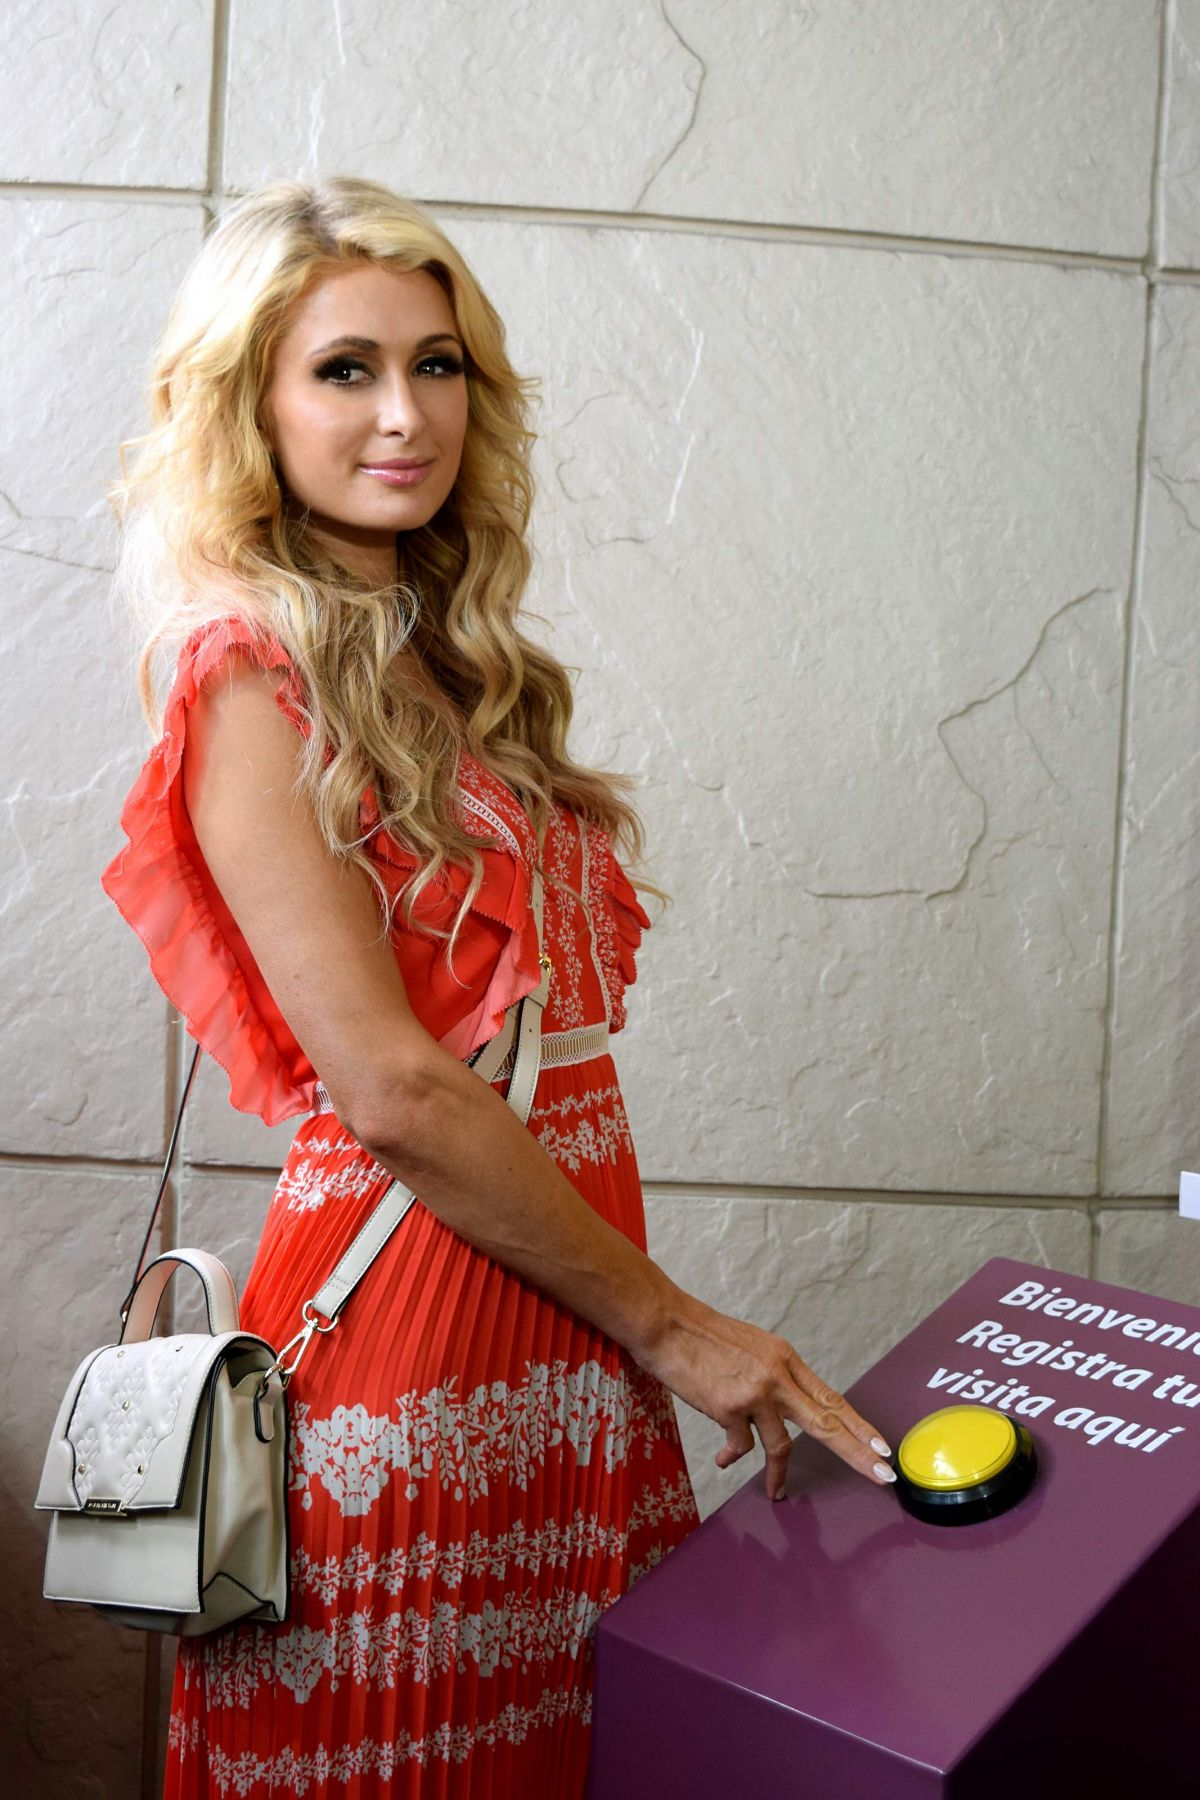 PARIS HILTON Visits a Children's Hospital in Mexico City 11/10/2016 Paris Hilton